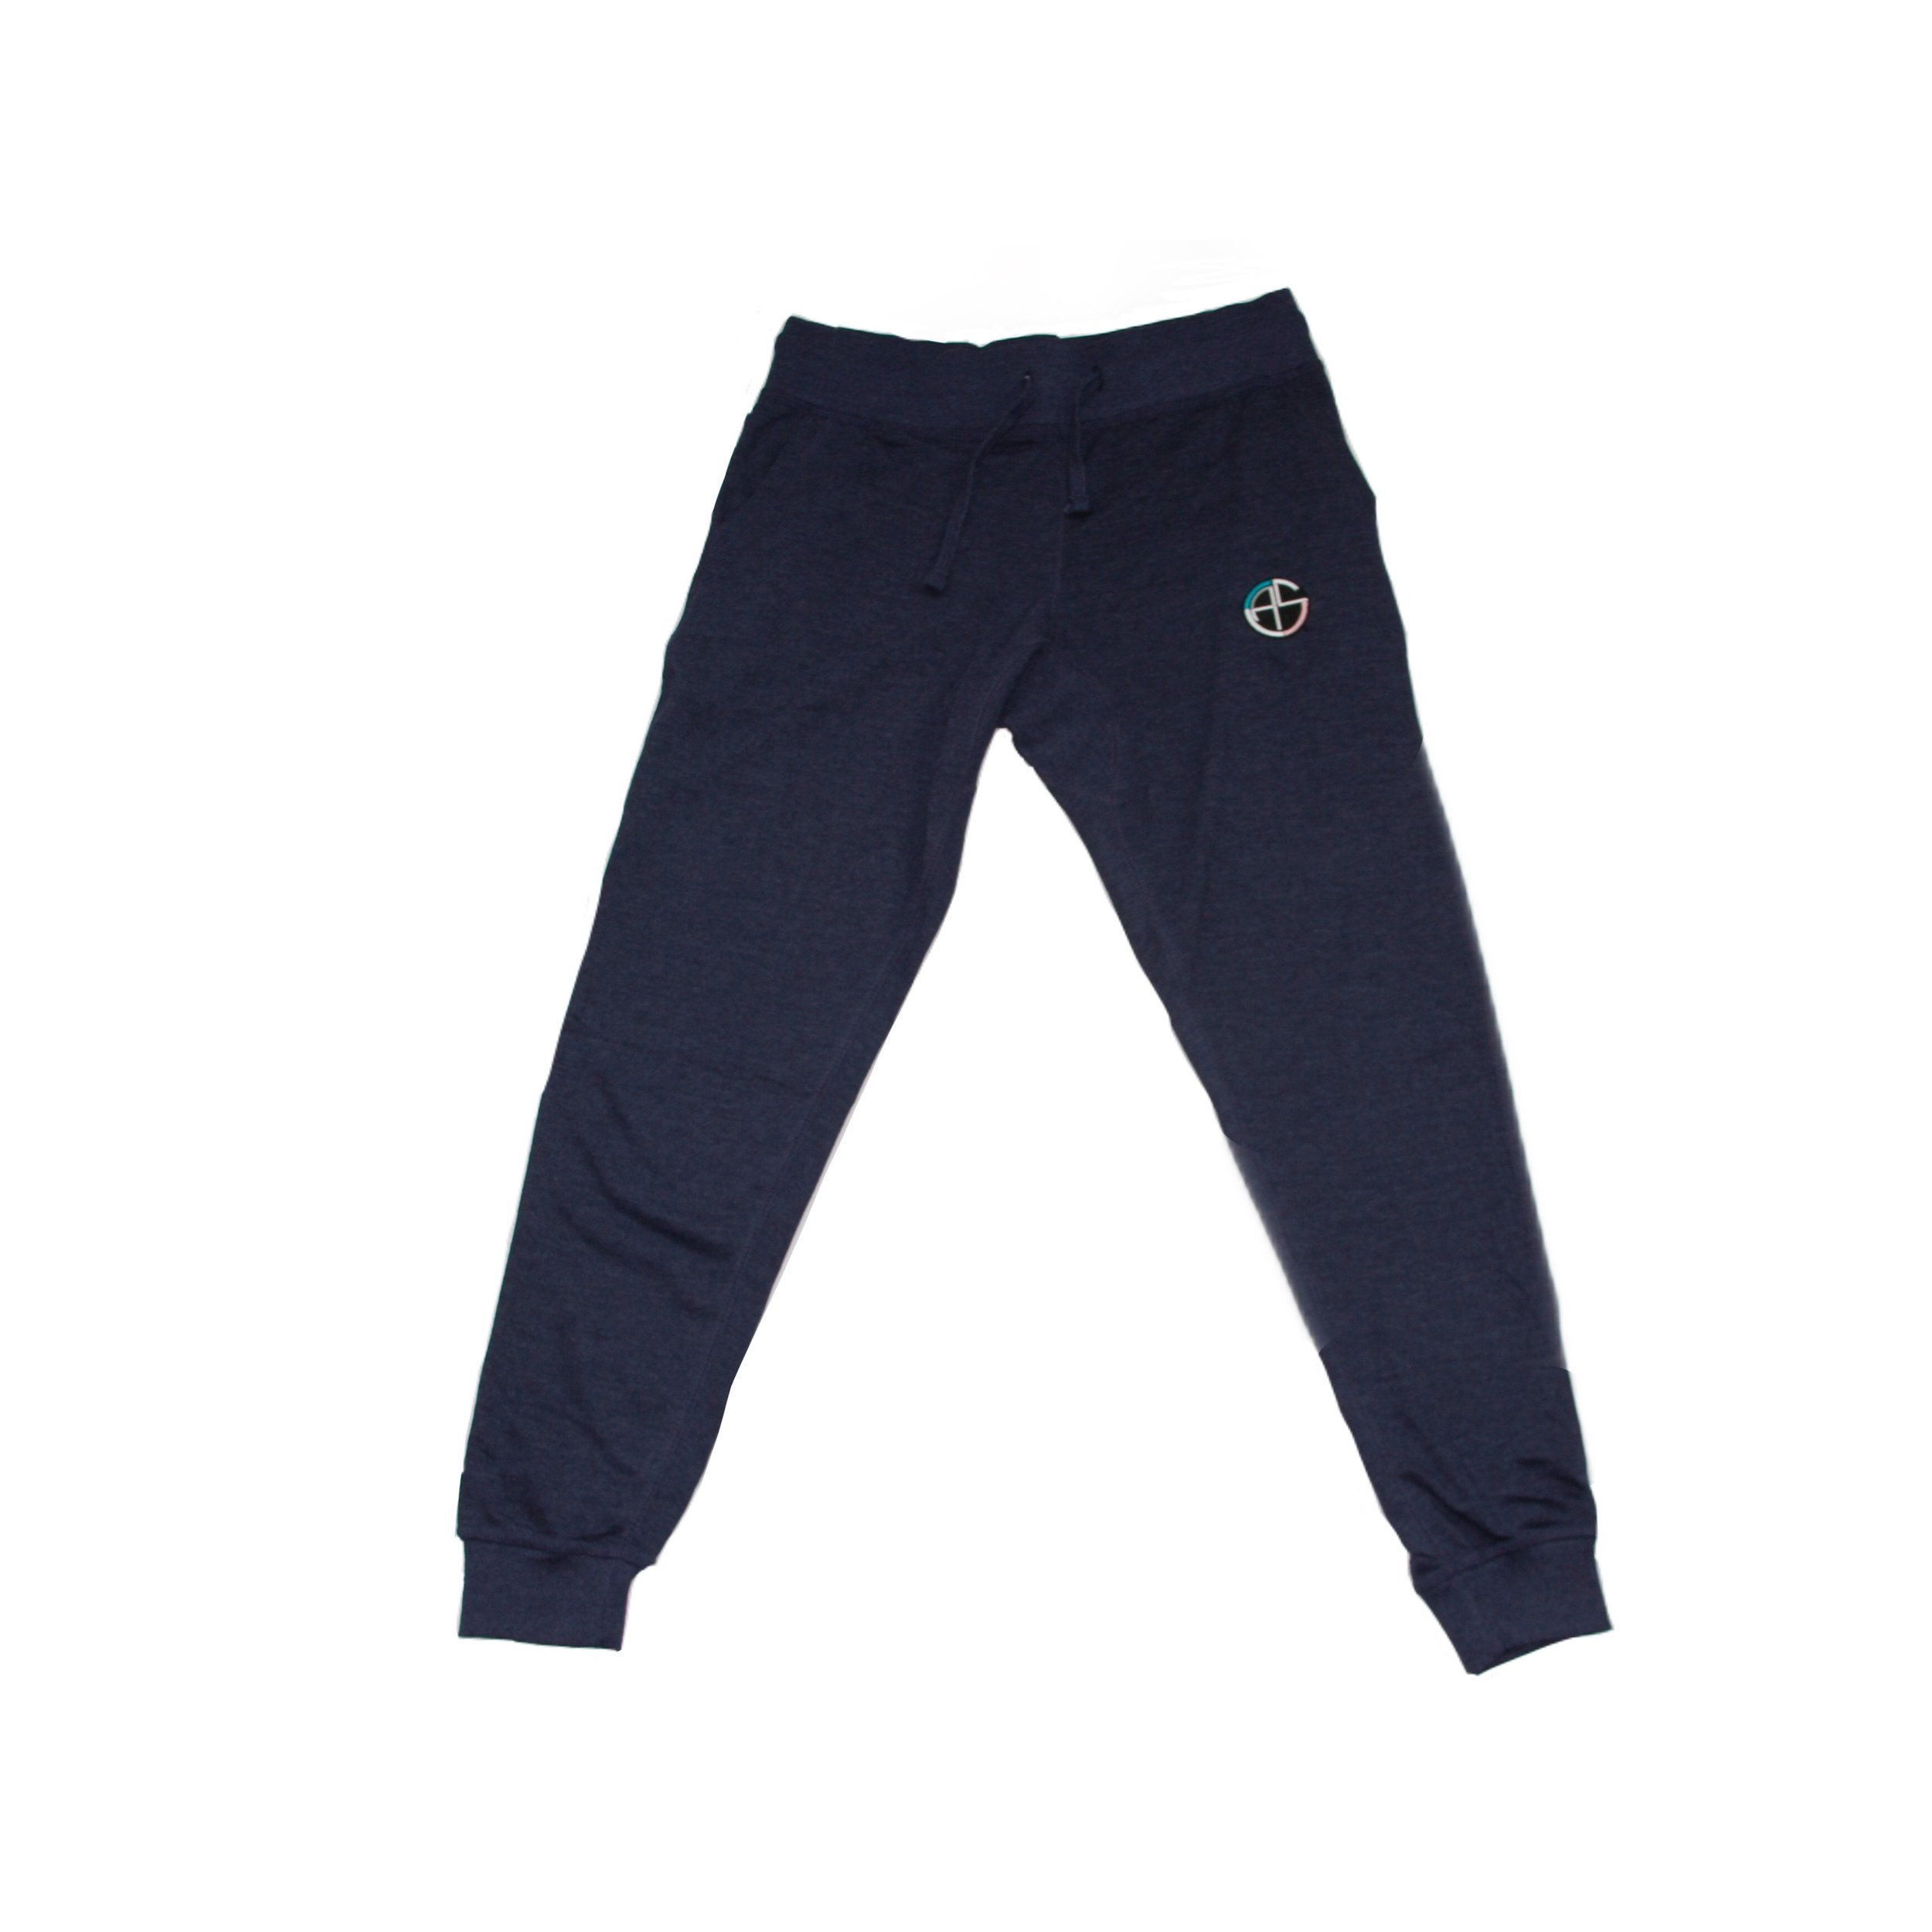 C.A.S. navy blue Joggers -